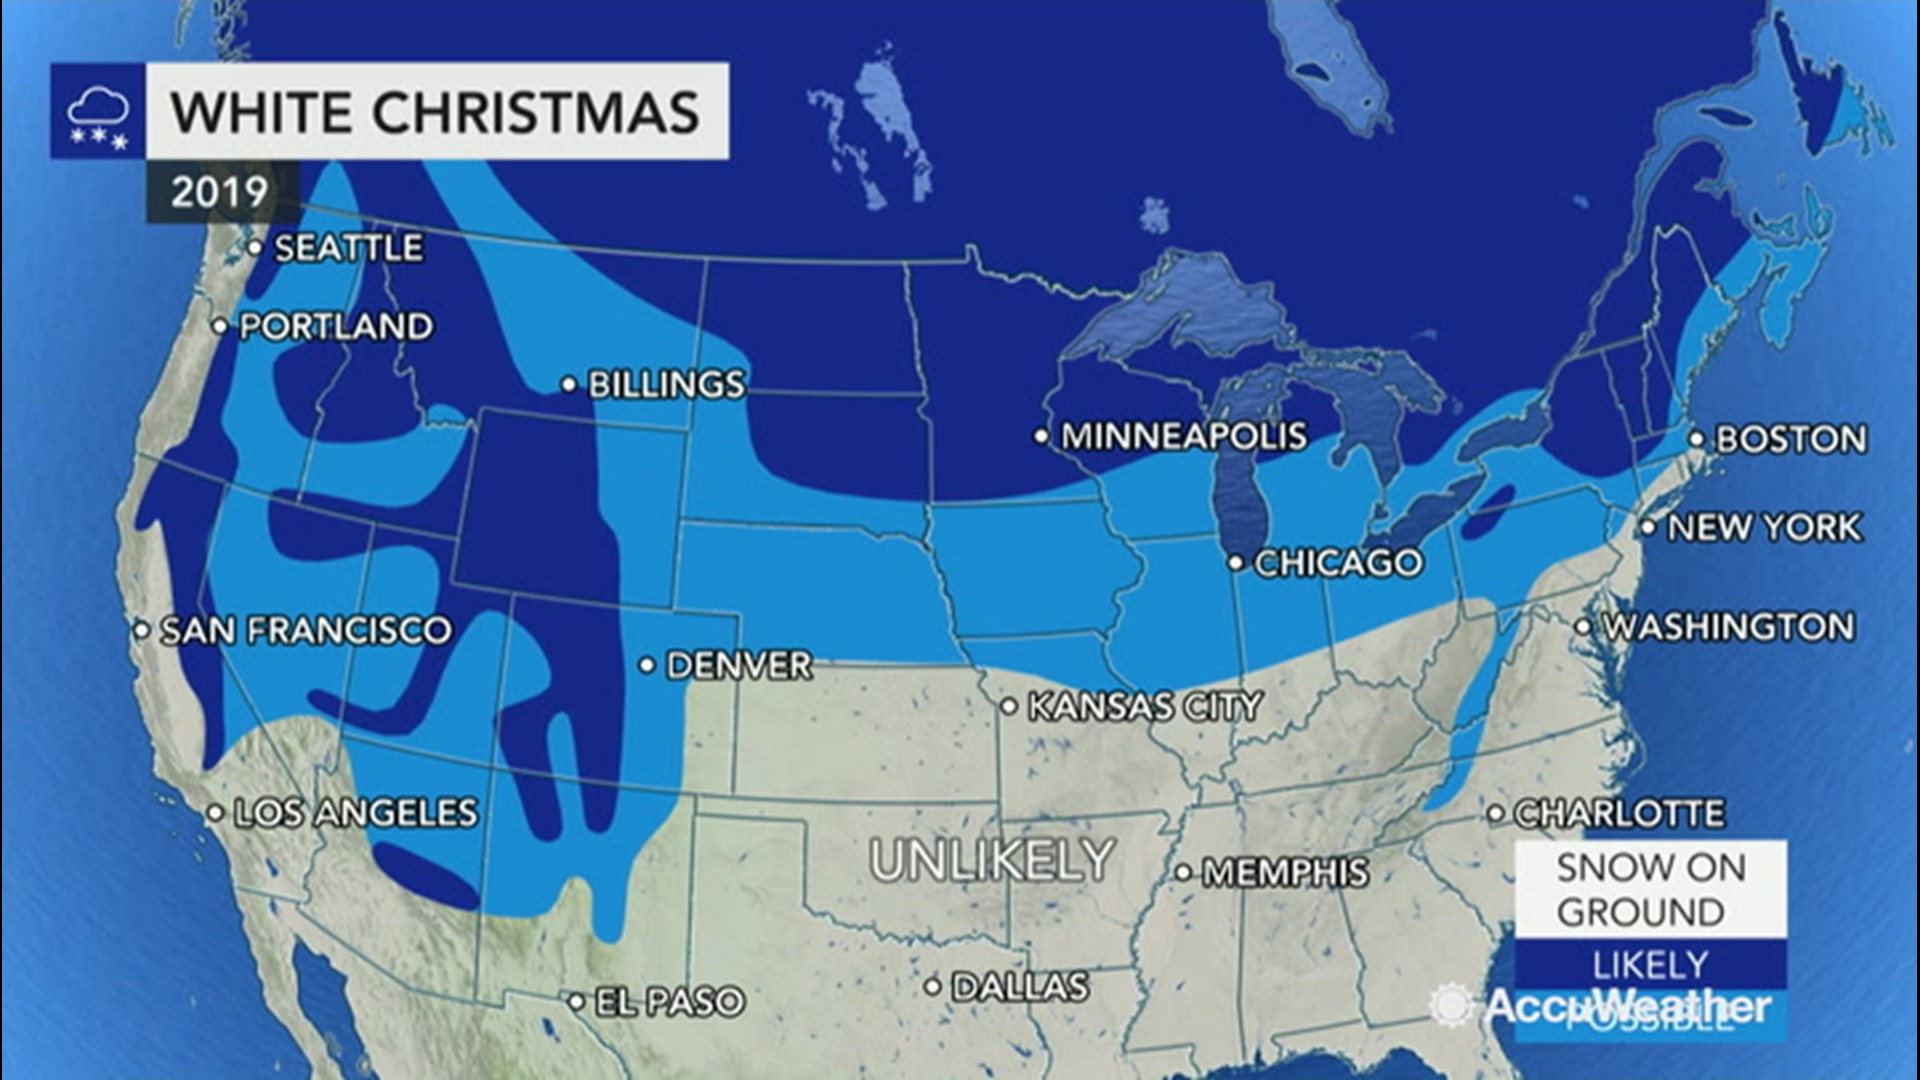 Will Denver Get A White Christmas 2020 White Christmas watch: Which cities have snow in the forecast, and